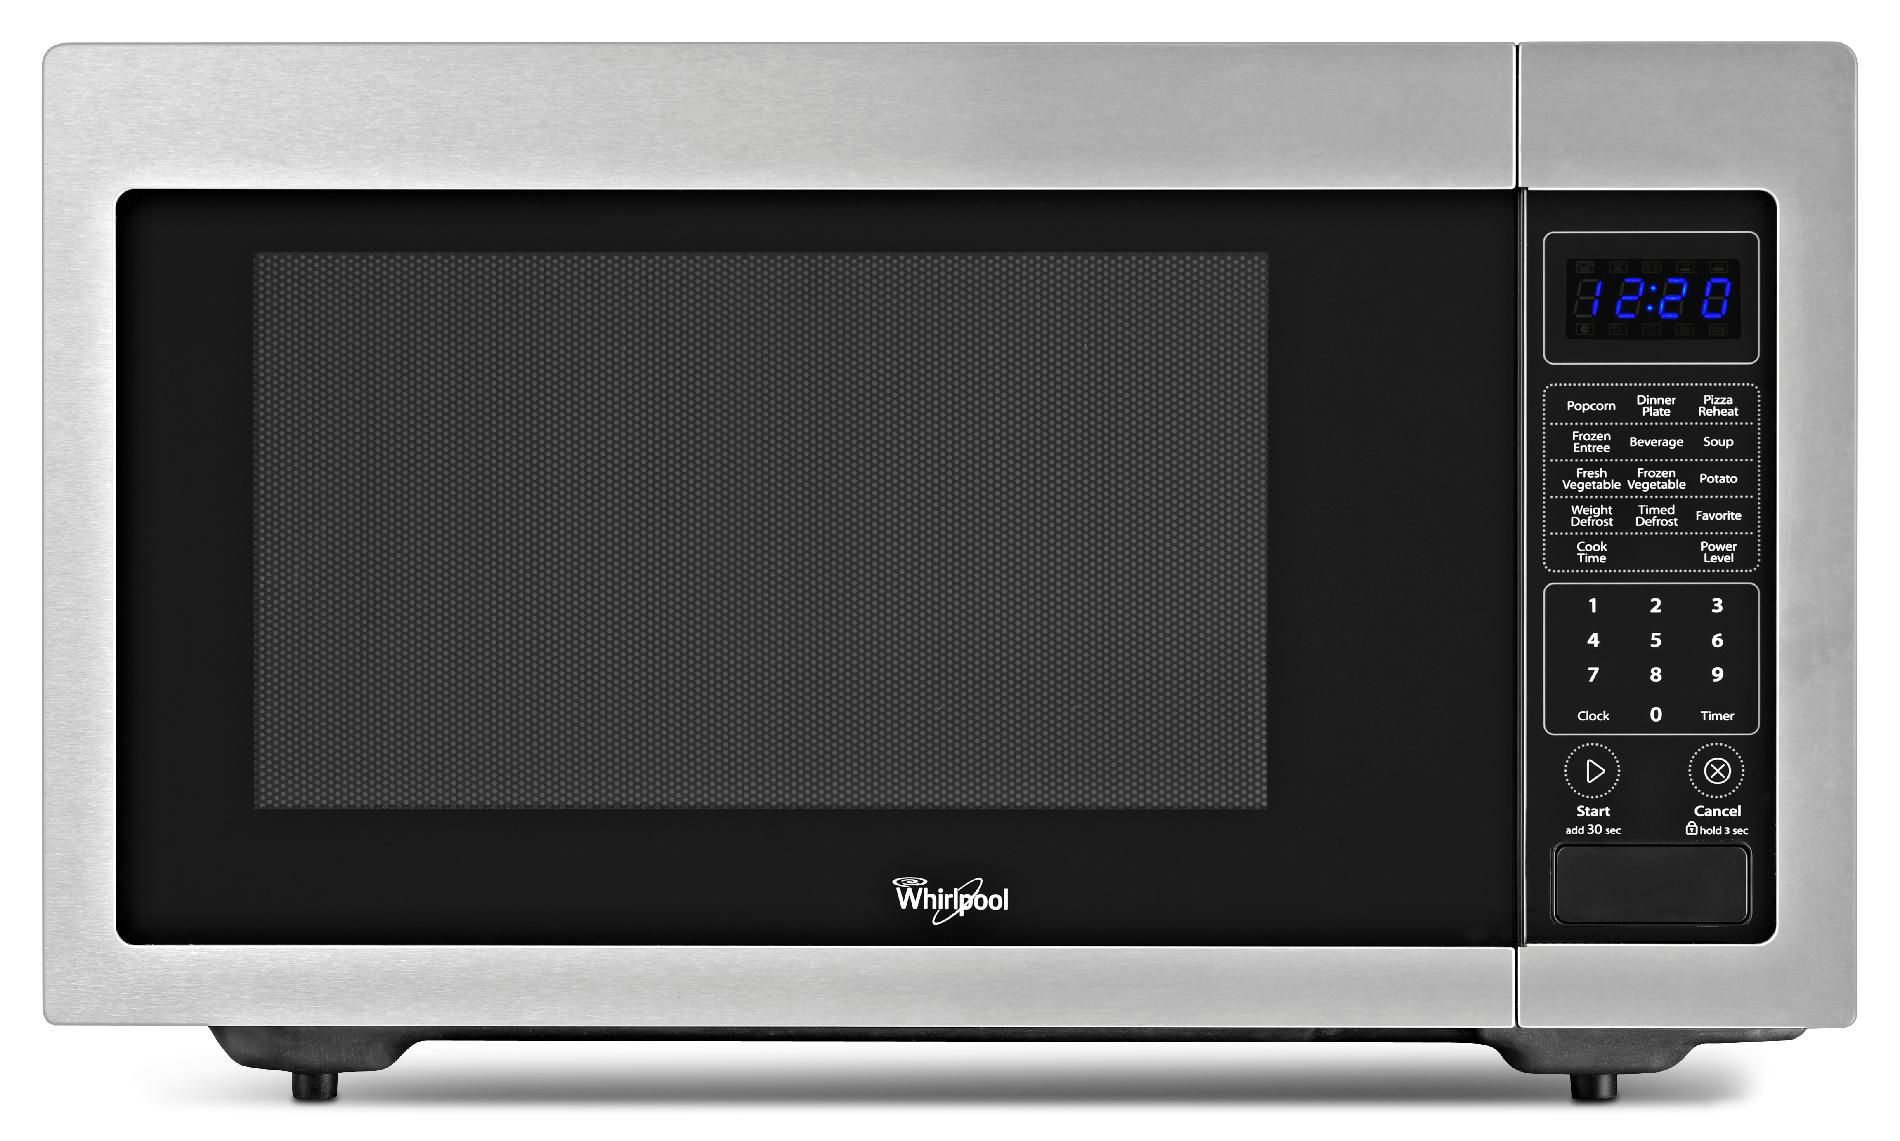 Whirlpool WMC30516AS 1.6 cu. ft. 1,200W Countertop Microwave - Stainless Steel